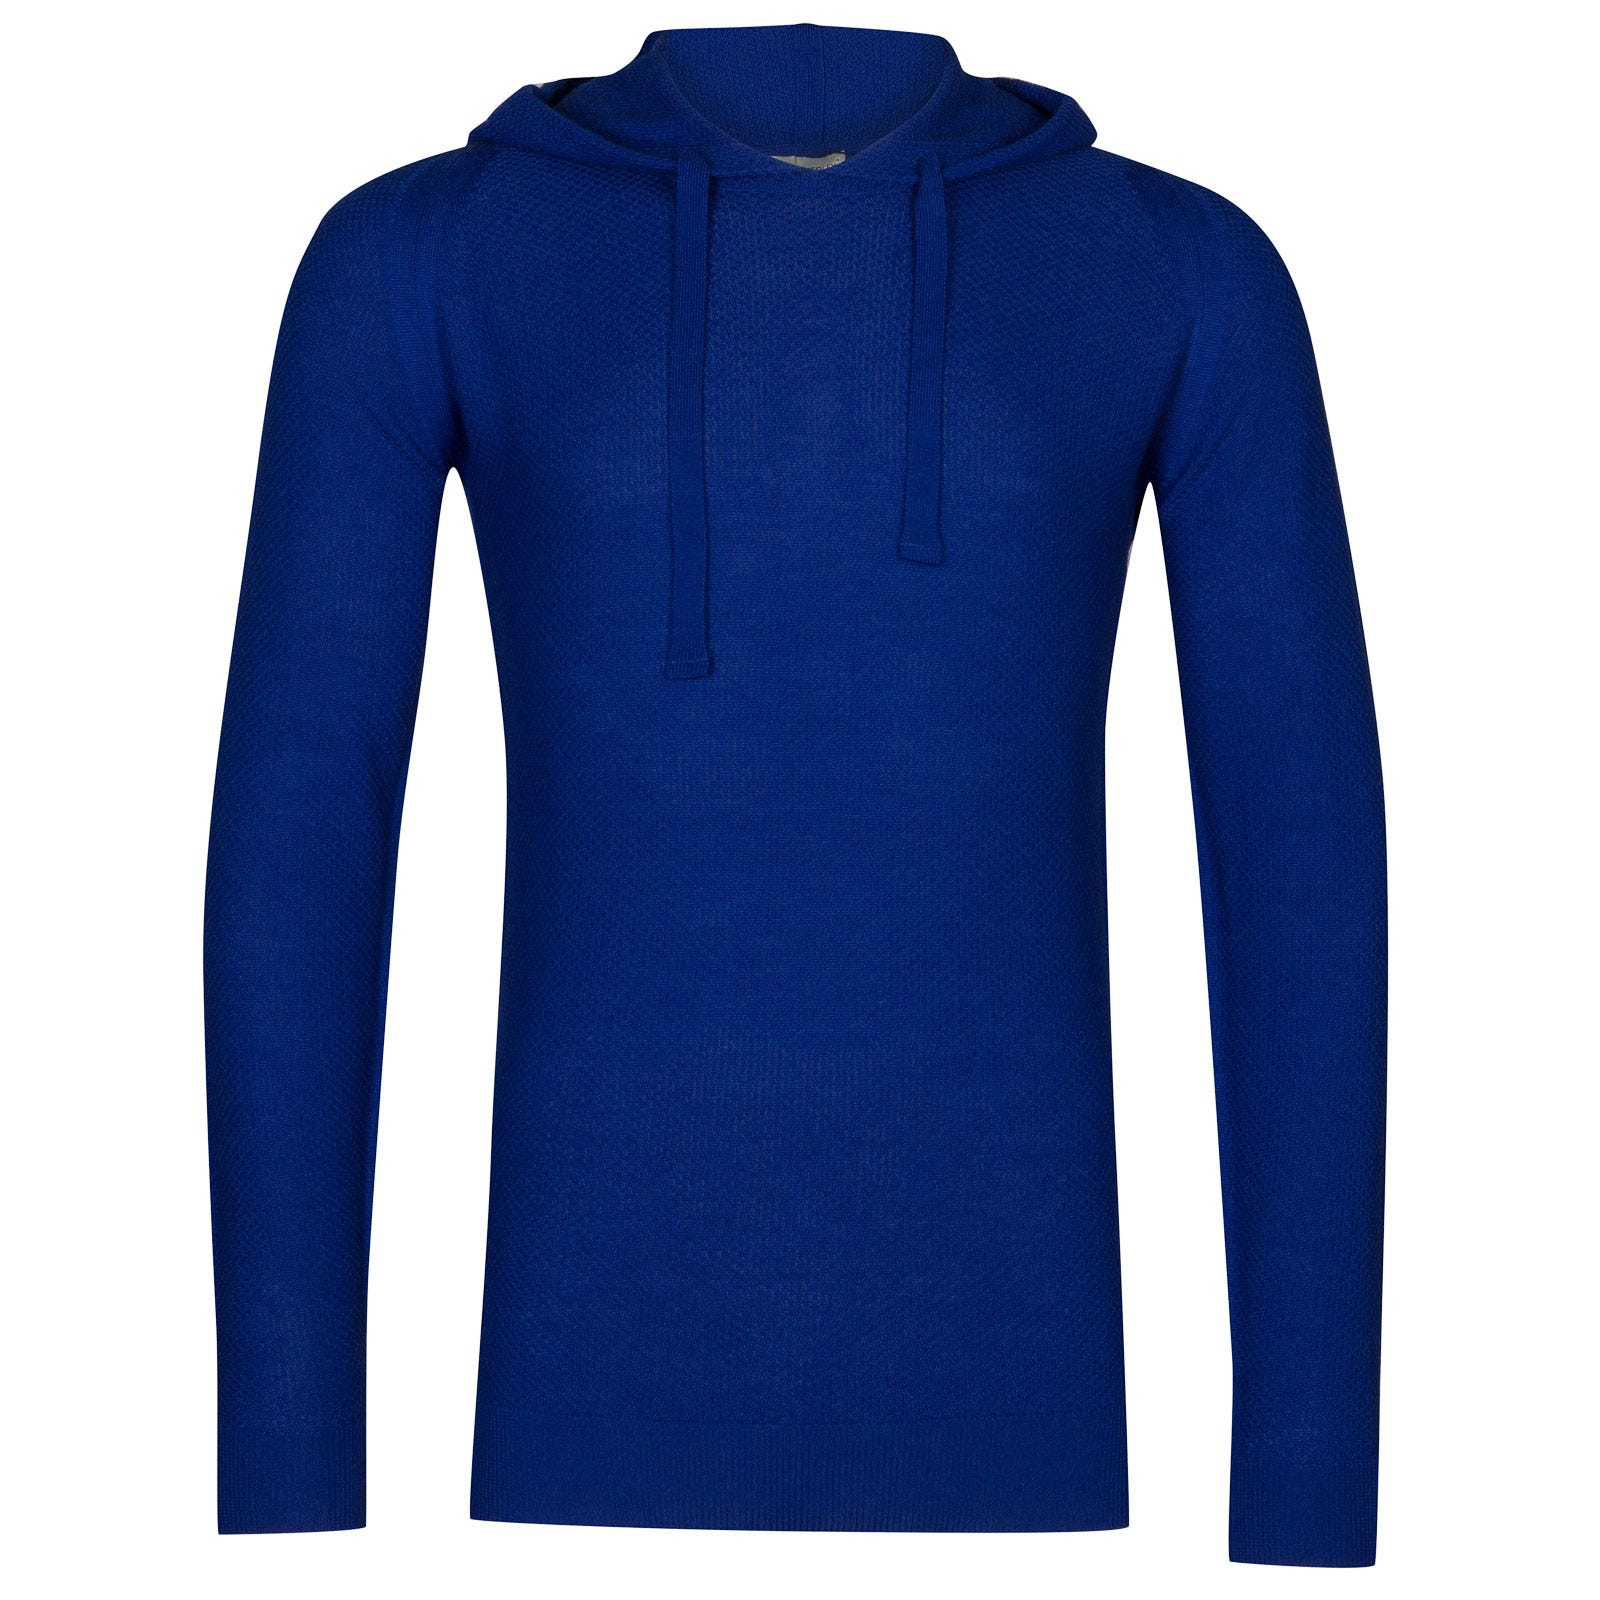 John Smedley 4Singular Merino Wool Pullover in Coniston Blue-XXL